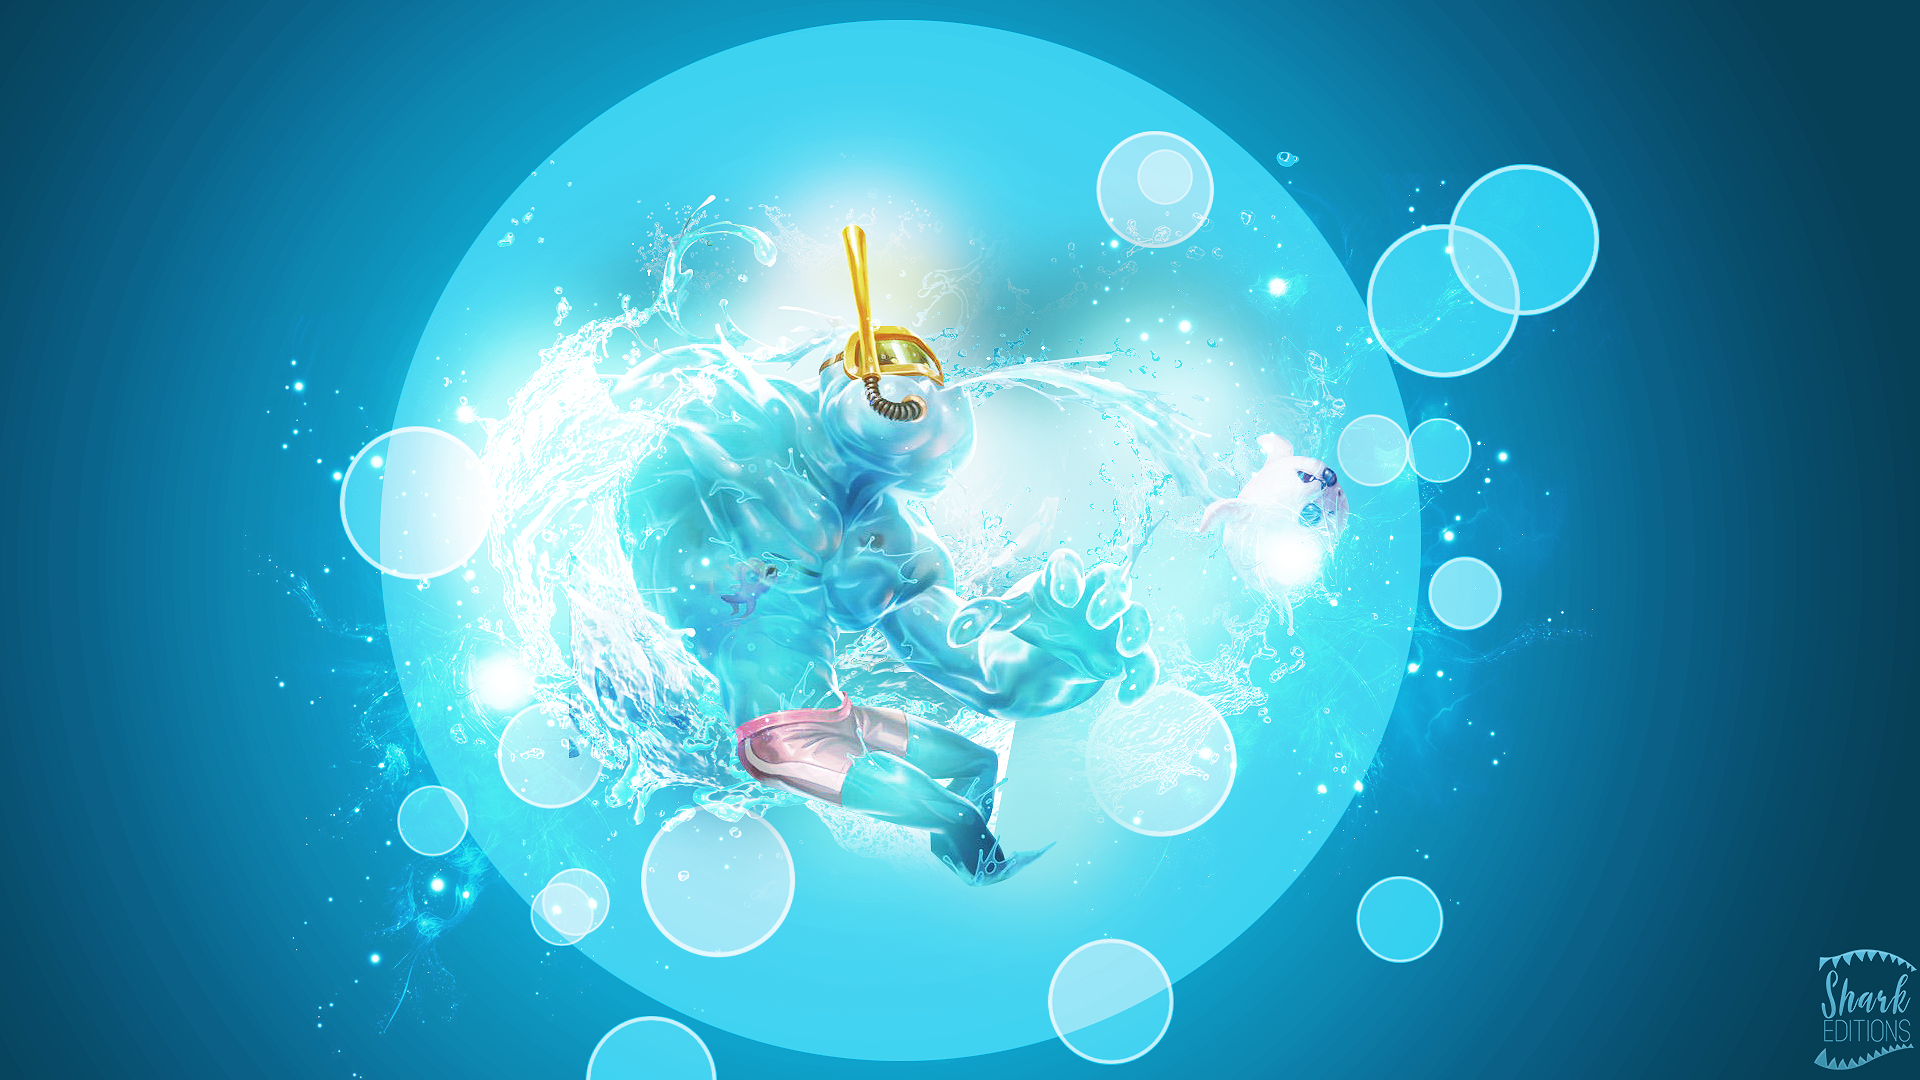 Pool Party Zac Wallpaper League of Legends by LeftLucy on ...